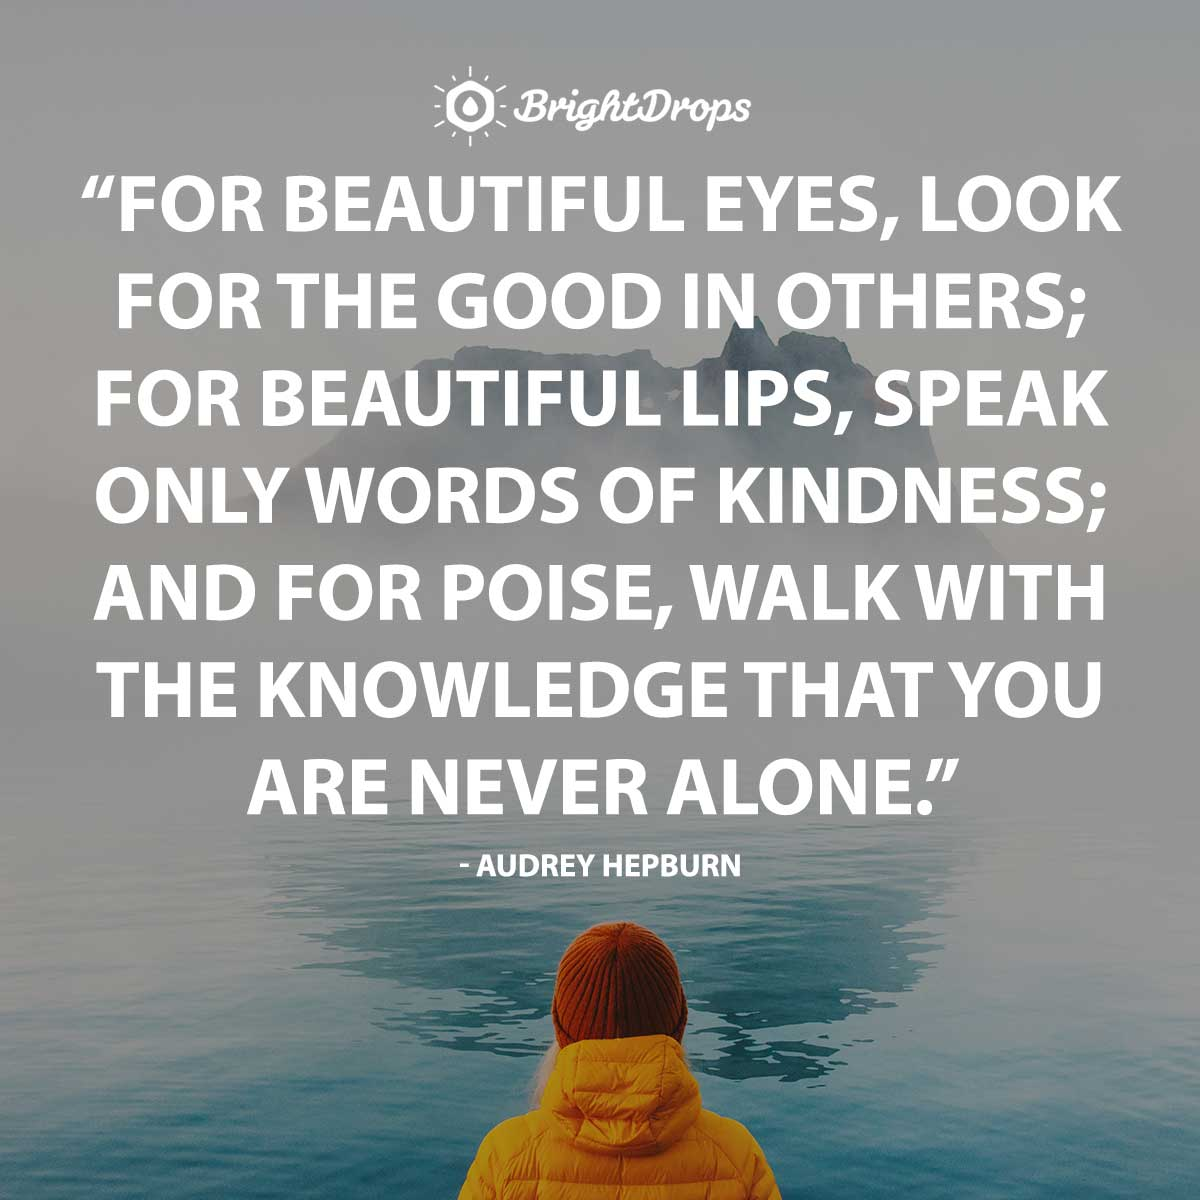 For beautiful eyes, look for the good in others; for beautiful lips, speak only words of kindness; and for poise, walk with the knowledge that you are never alone. - Audrey Hepburn